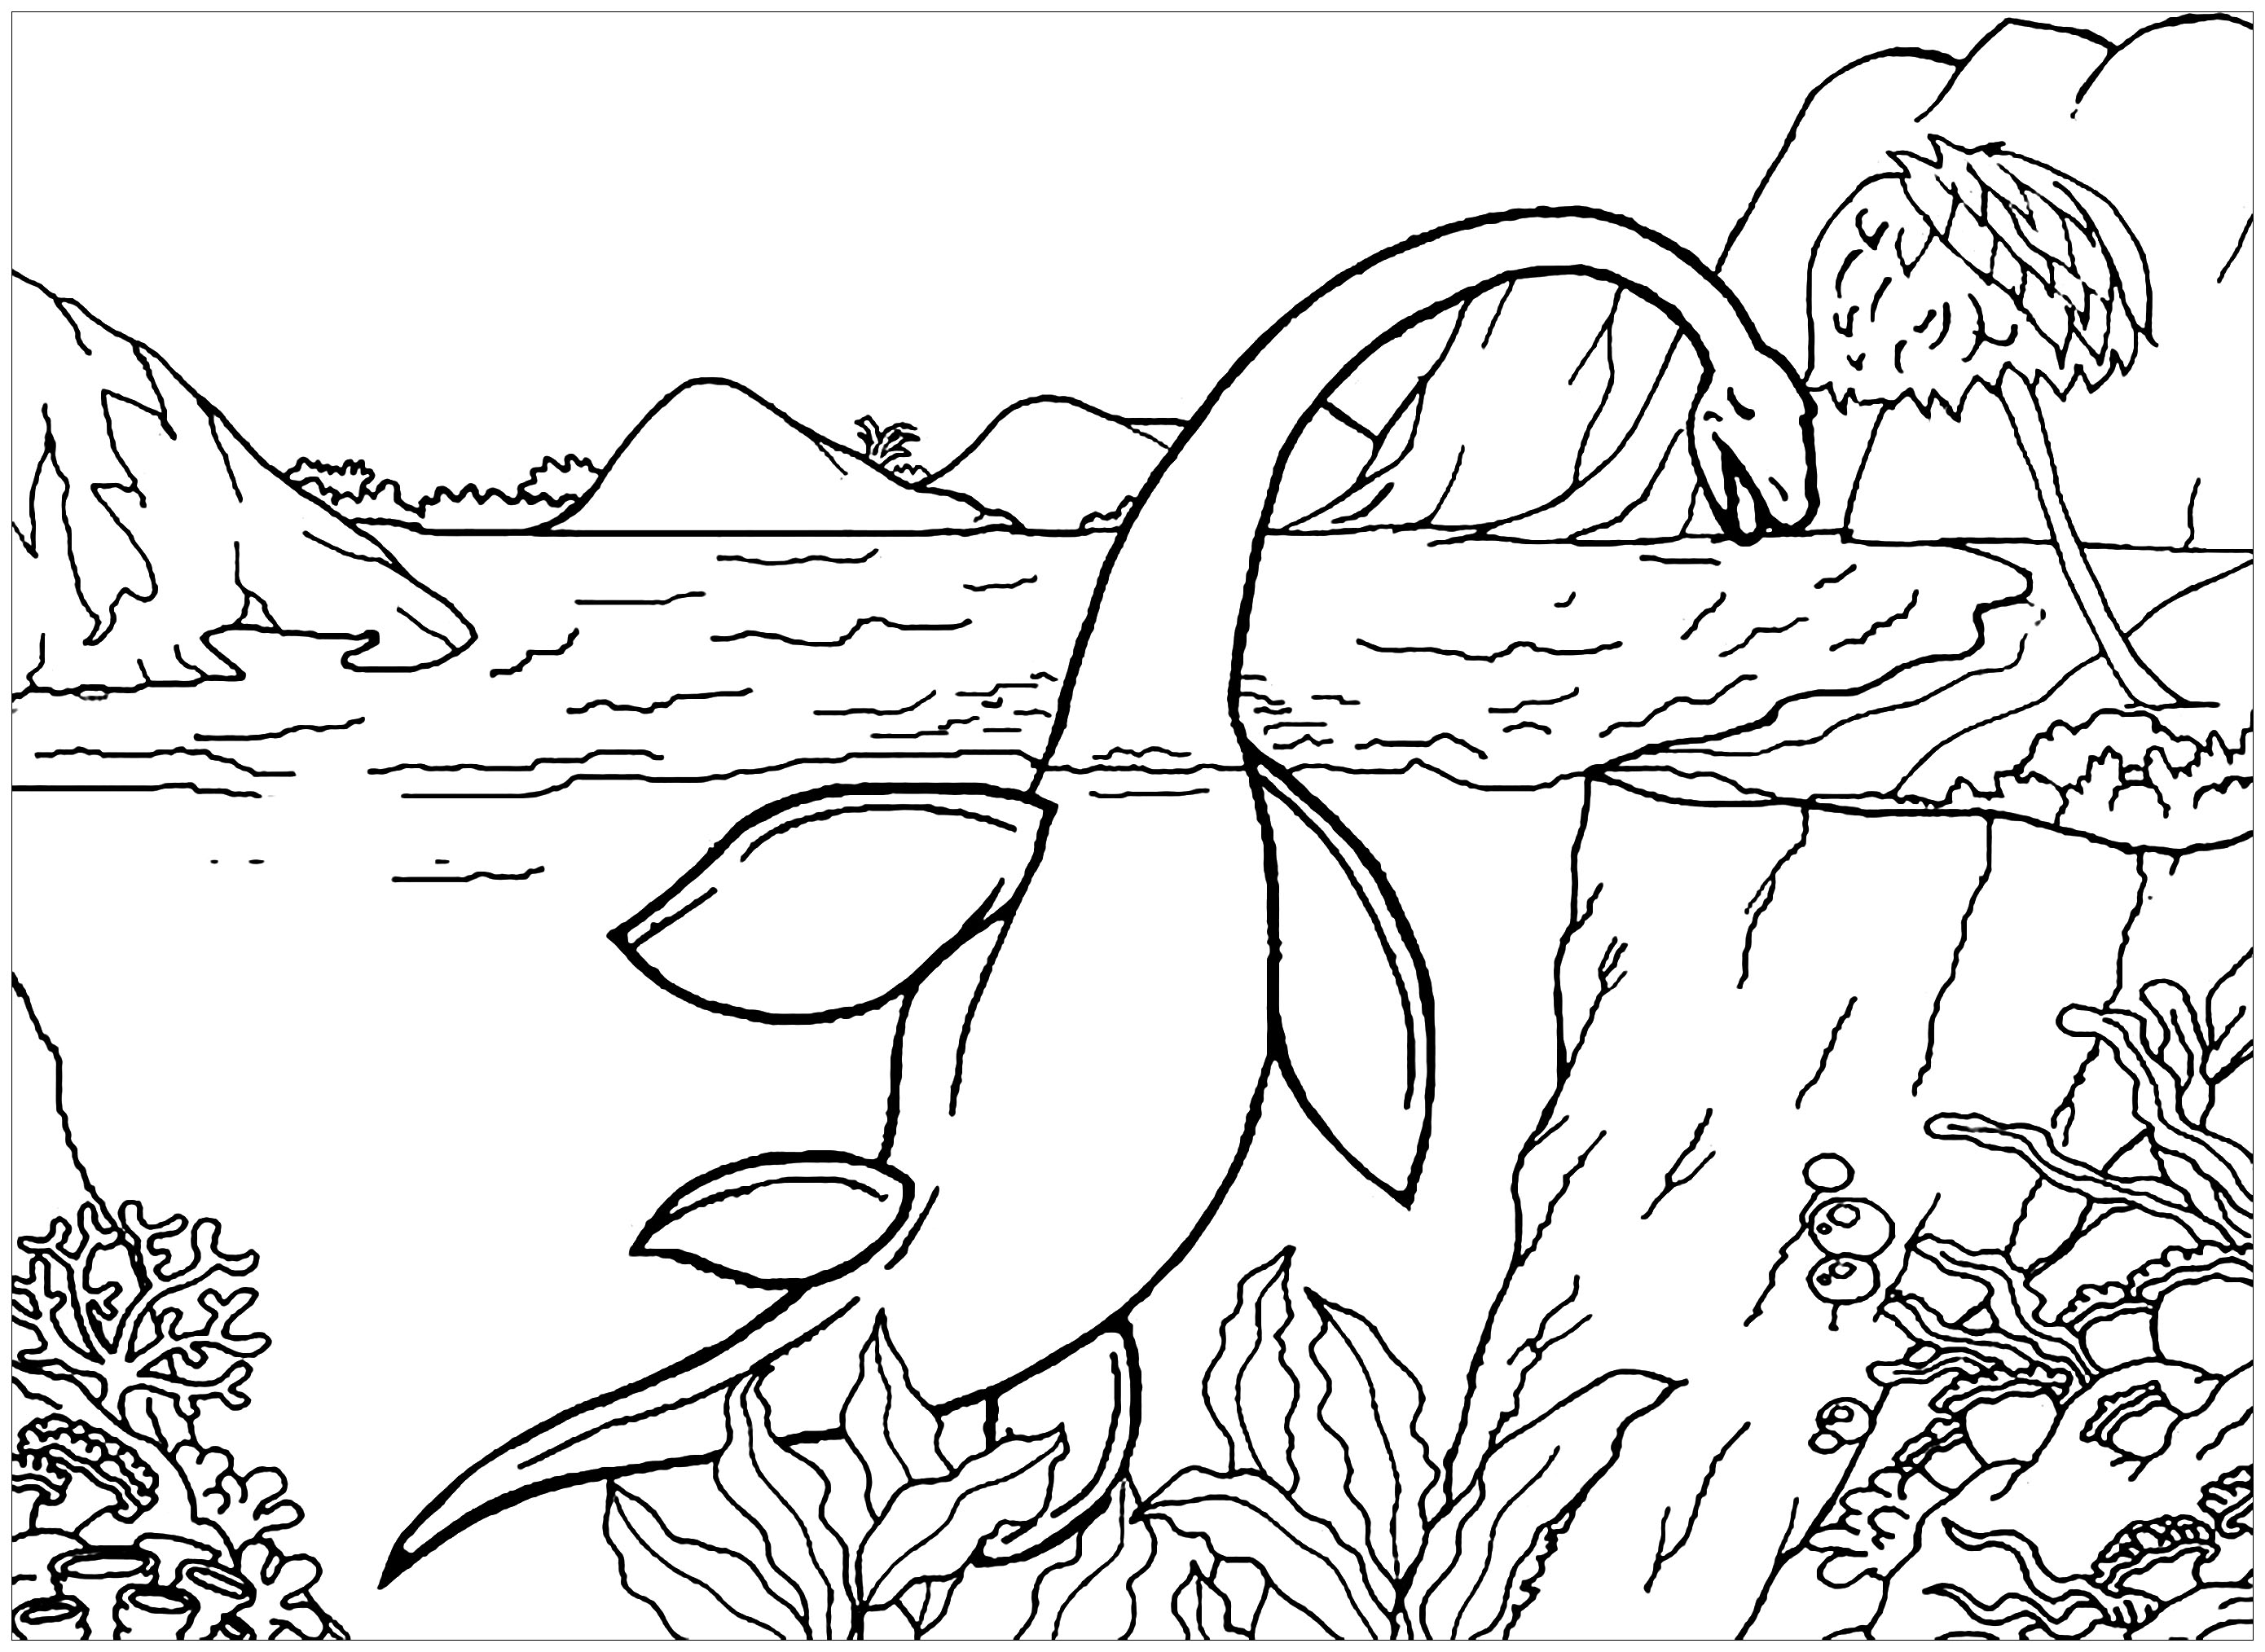 colouring dinosaur pictures printable dinosaur baby shower decorations 2018 home pictures dinosaur colouring